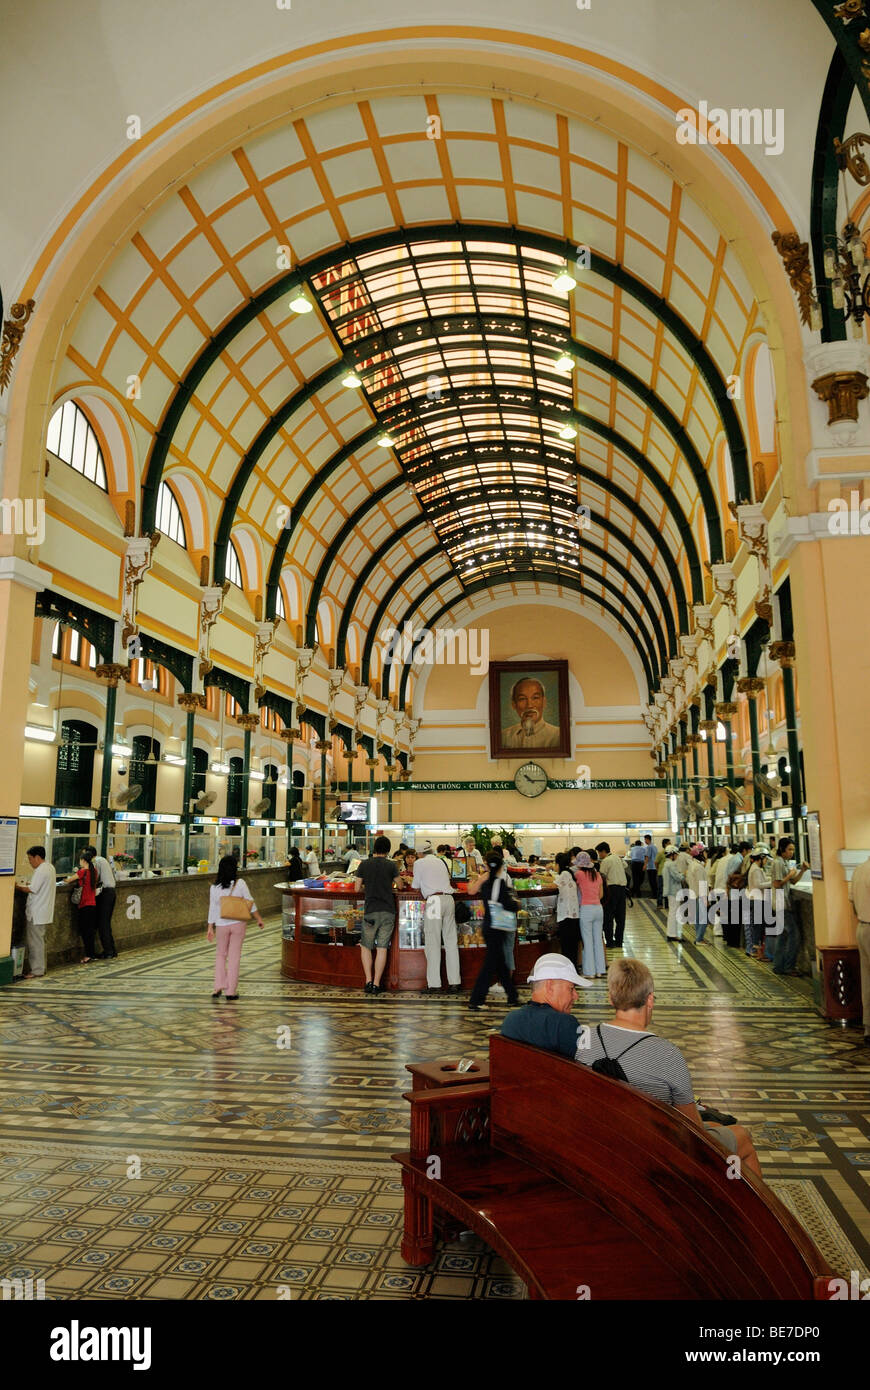 French colonial building, interieur of main post office, Saigon, Ho Chi Minh City, Vietnam, Asia - Stock Image